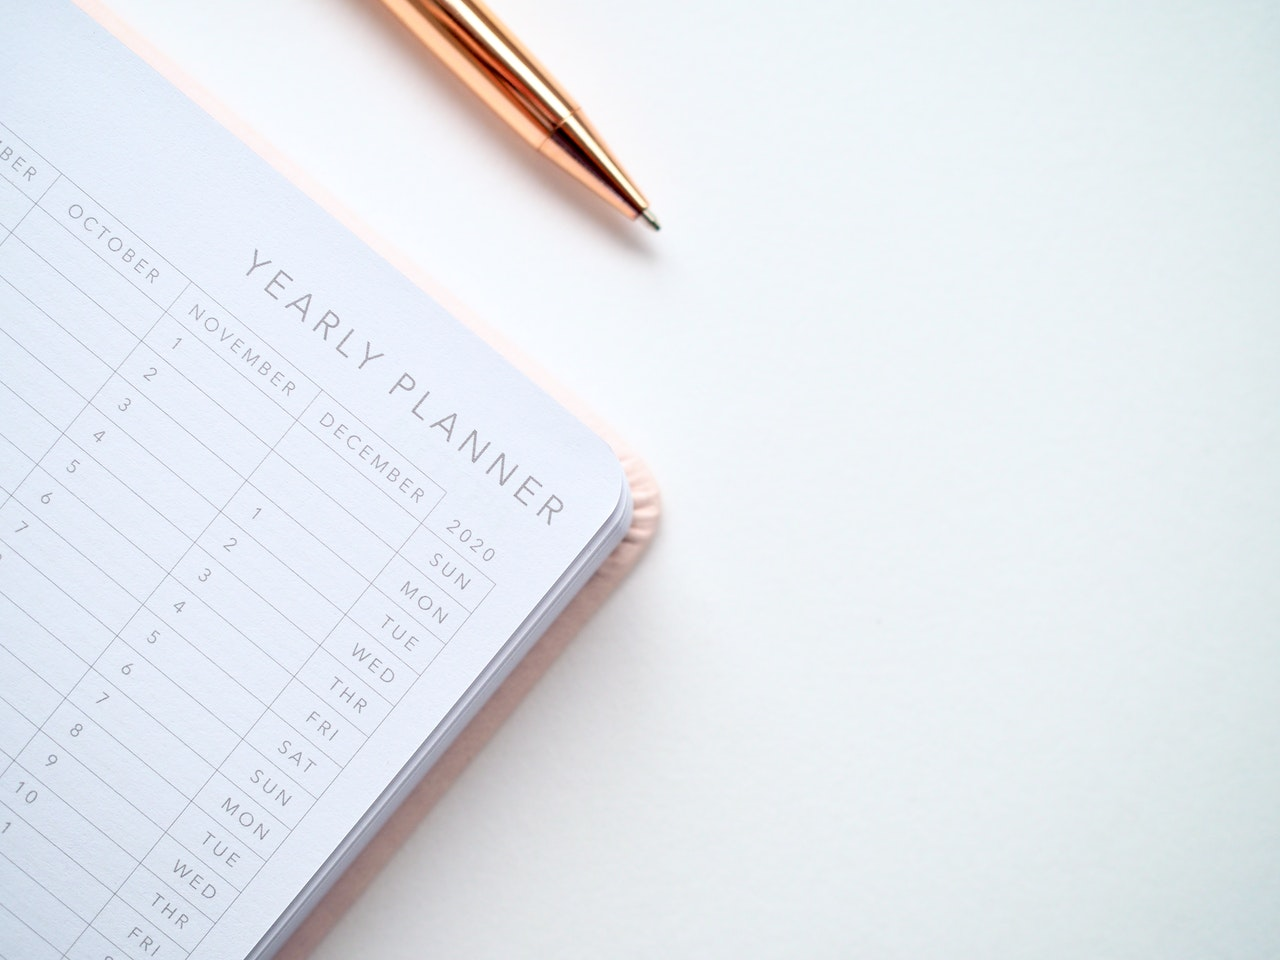 Image of calender and pen on desk